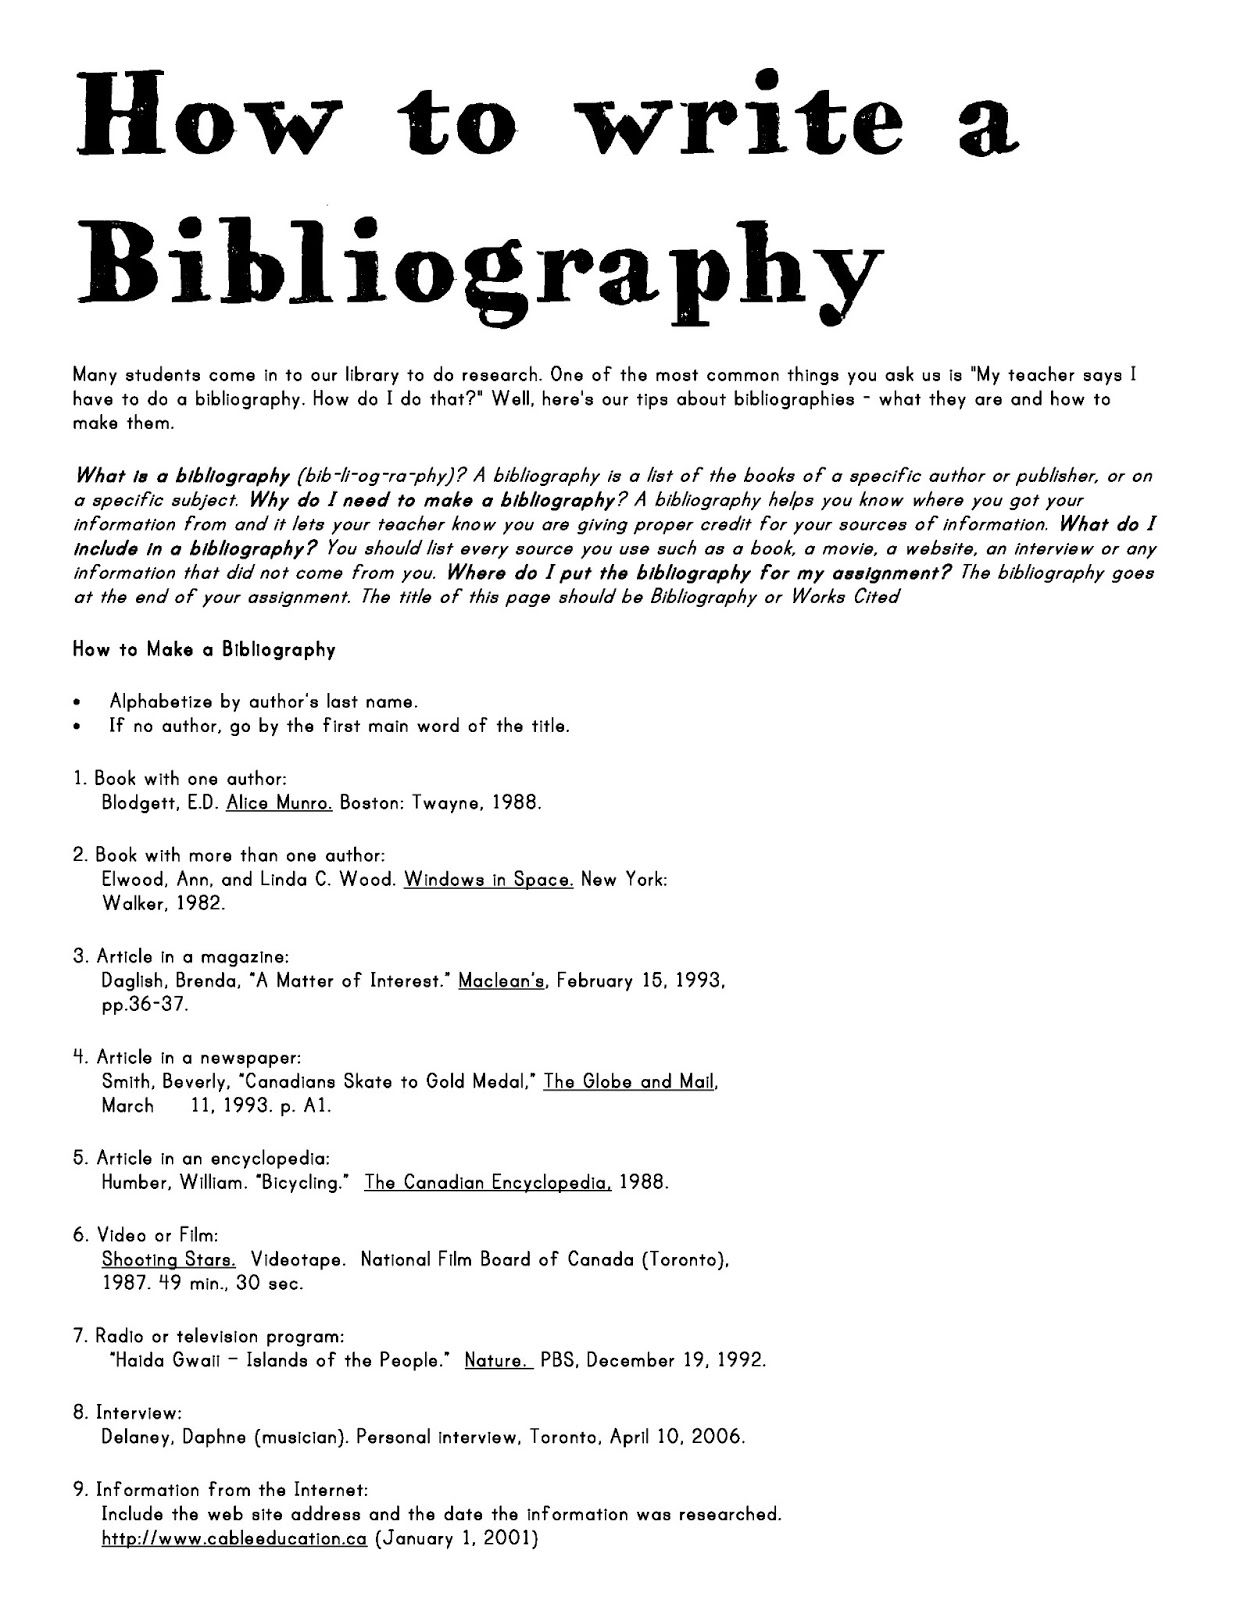 How To Write A Bibliography School Library